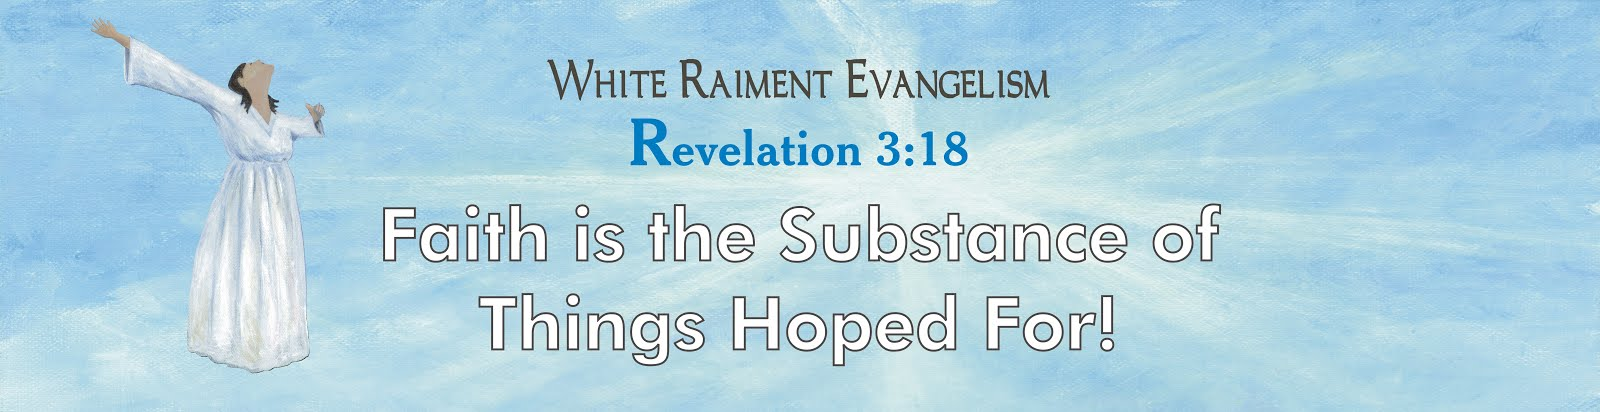 White Raiment Evangelism: Faith is the Substance of Things Hoped For